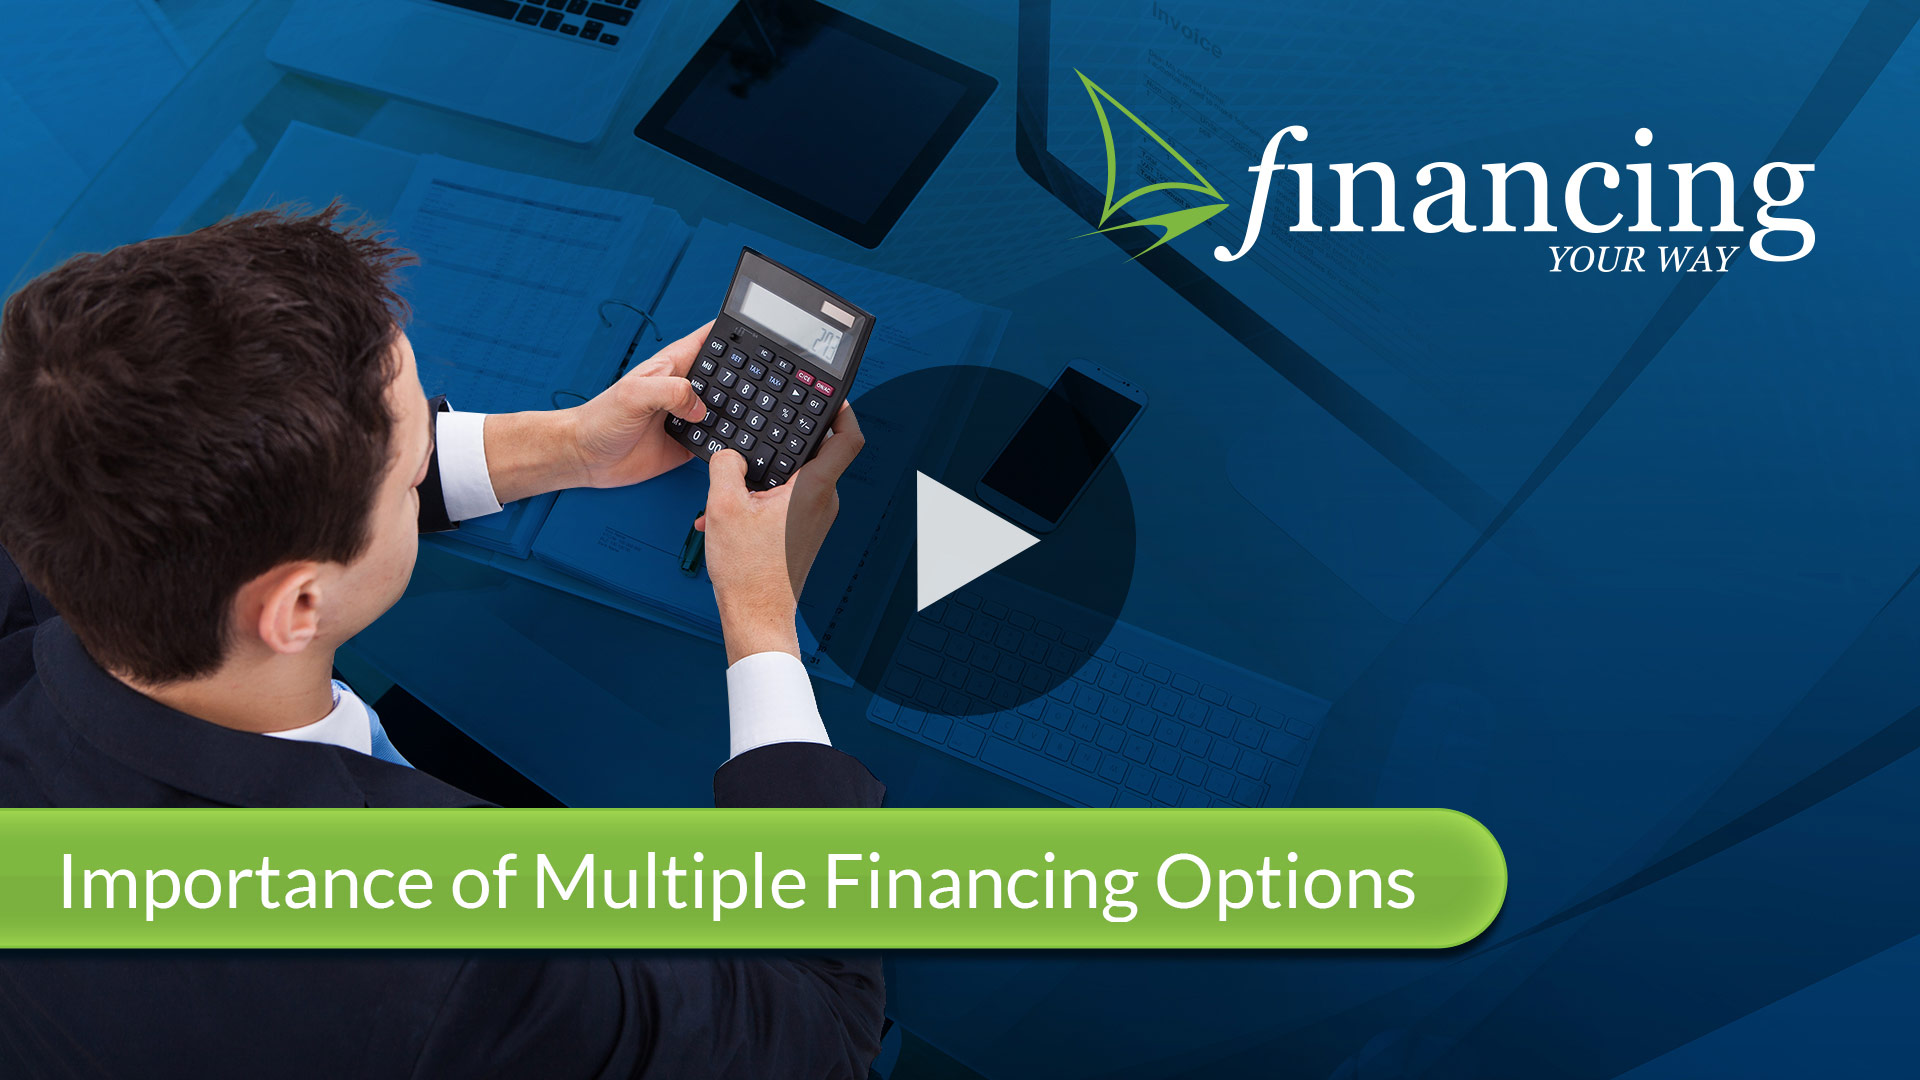 Importance of Multiple Financing Options